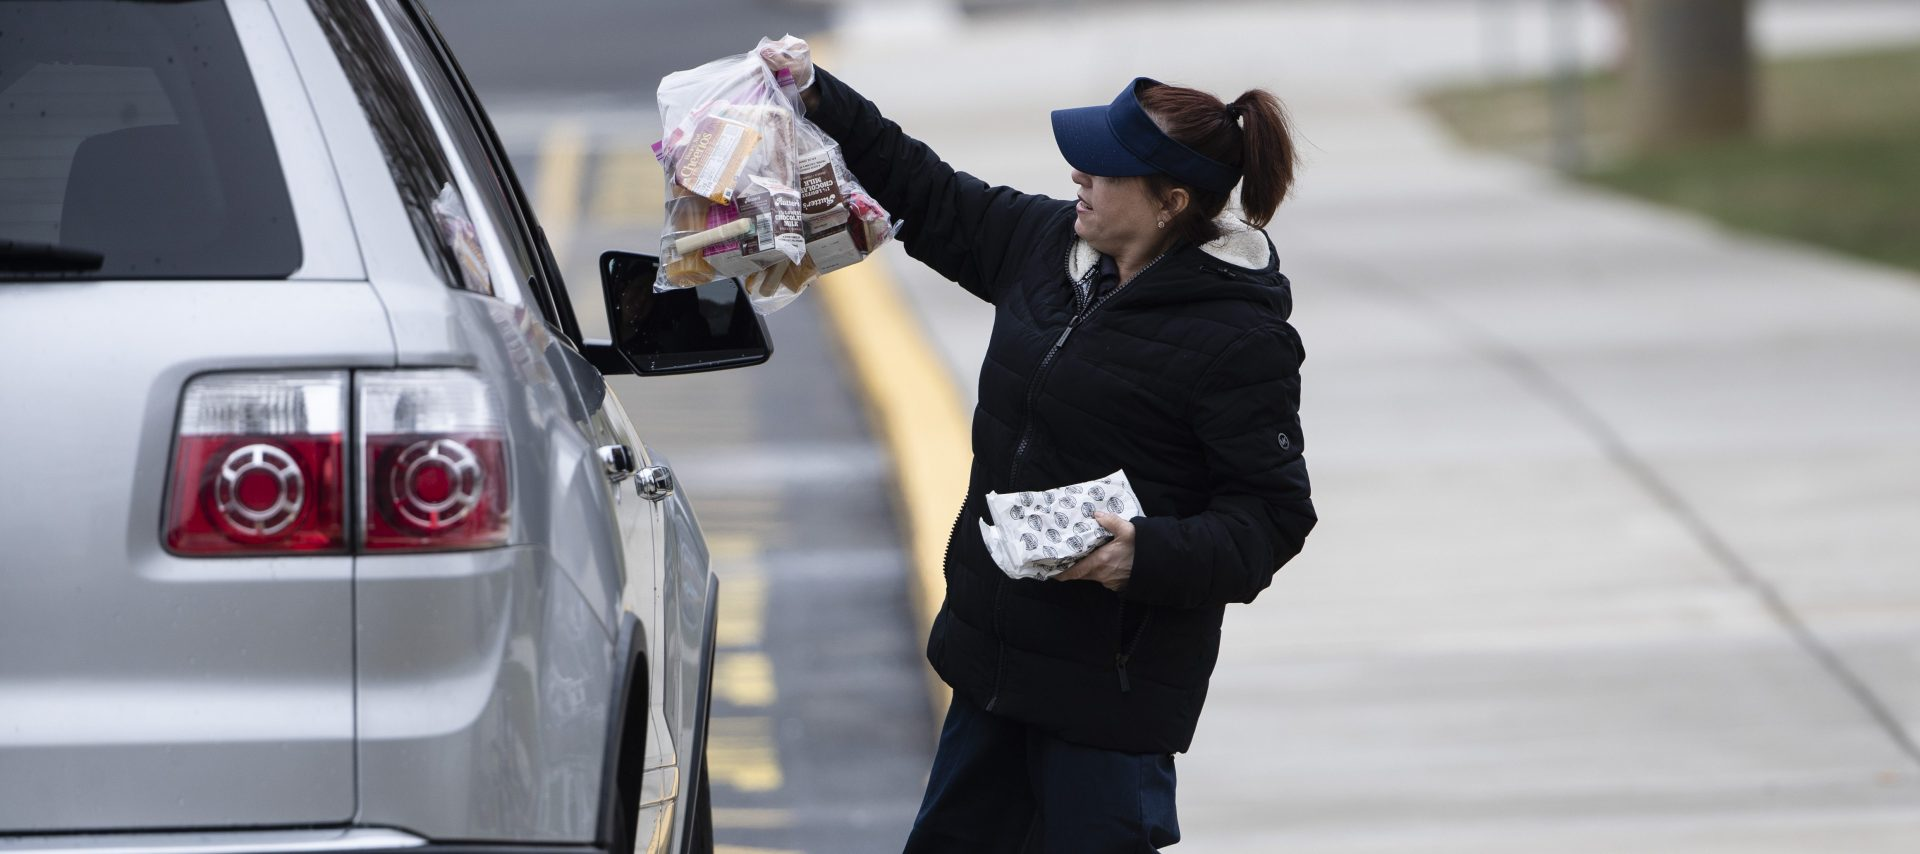 Cafeteria worker Cathy Piluso hands out free meals at Bensalem High School in Bensalem, Pa., Thursday, March 19, 2020. Pennsylvania reported another big jump in confirmed coronavirus Thursday. The state Department of Health reported that cases topped 180, up 40%.